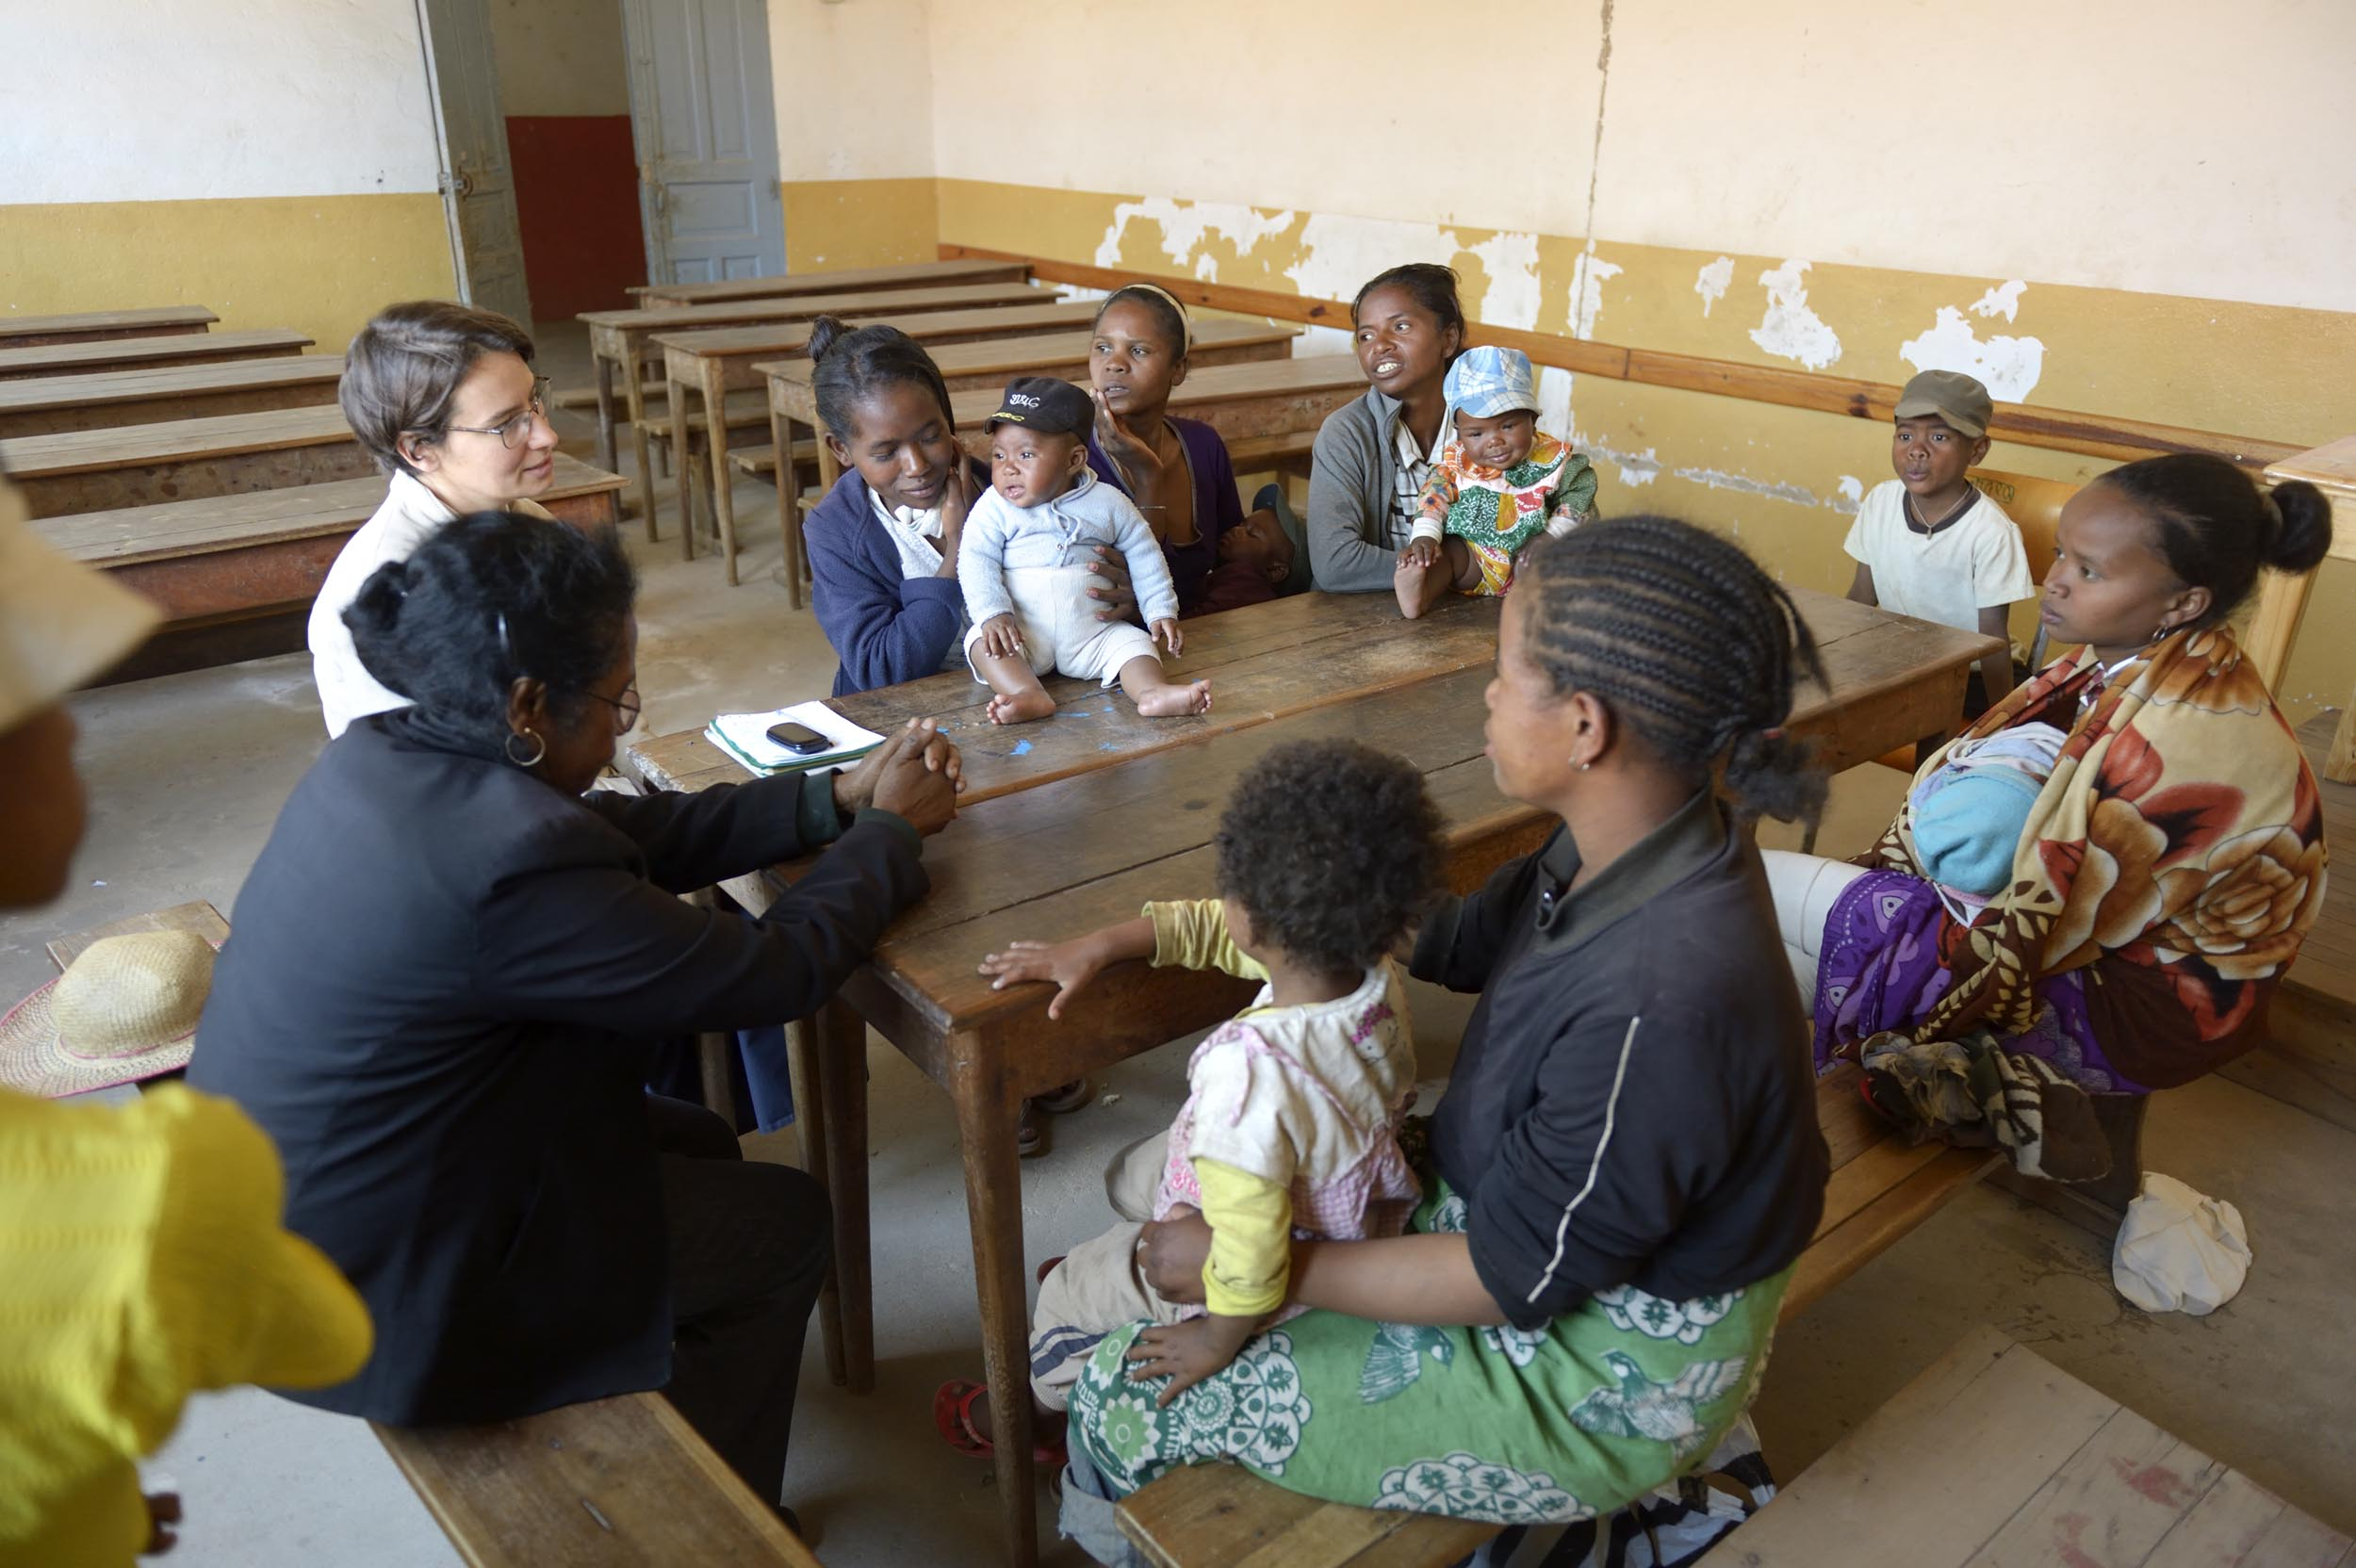 MADAGASCAR: Salesian Programs for Youth and Women Bring Hope to Families